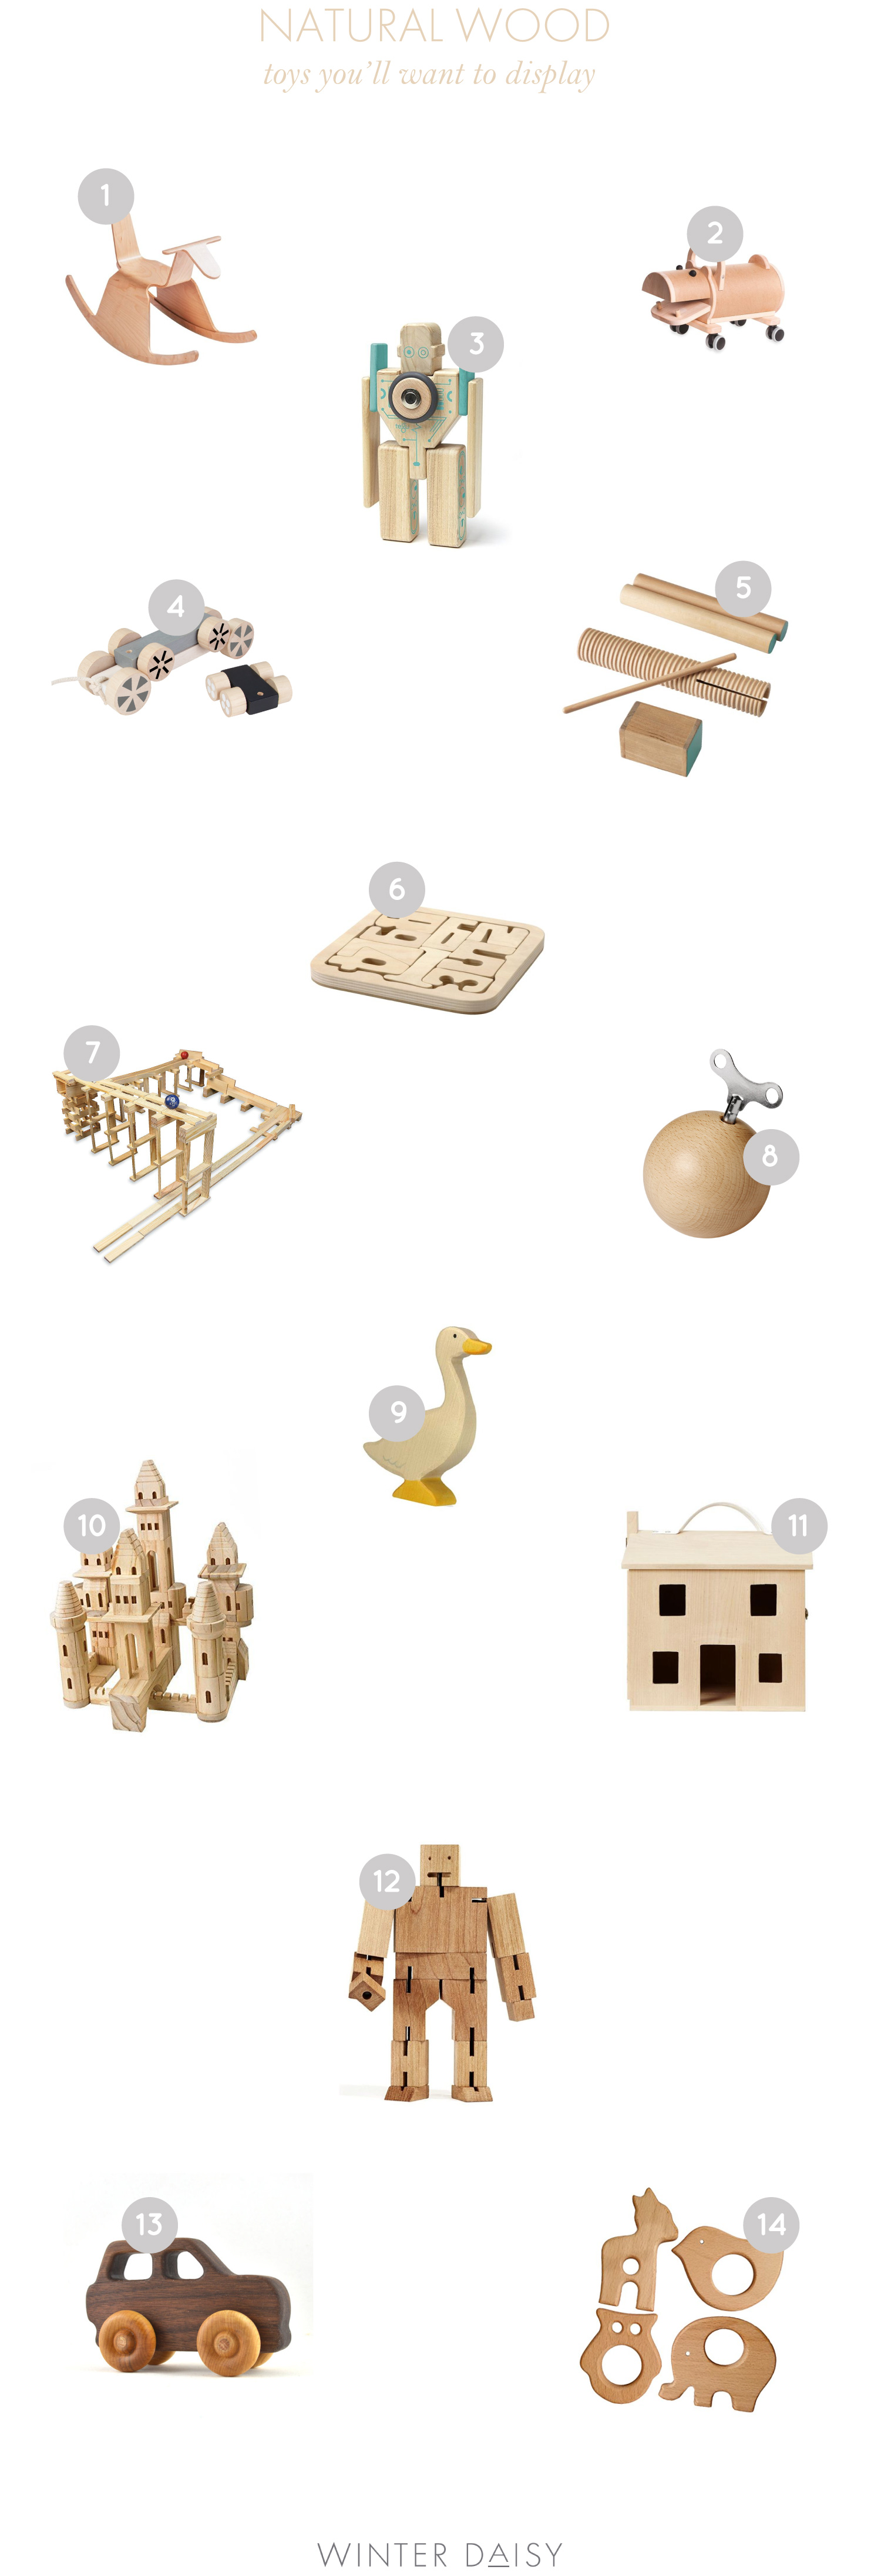 natural wooden toys for babies and kids